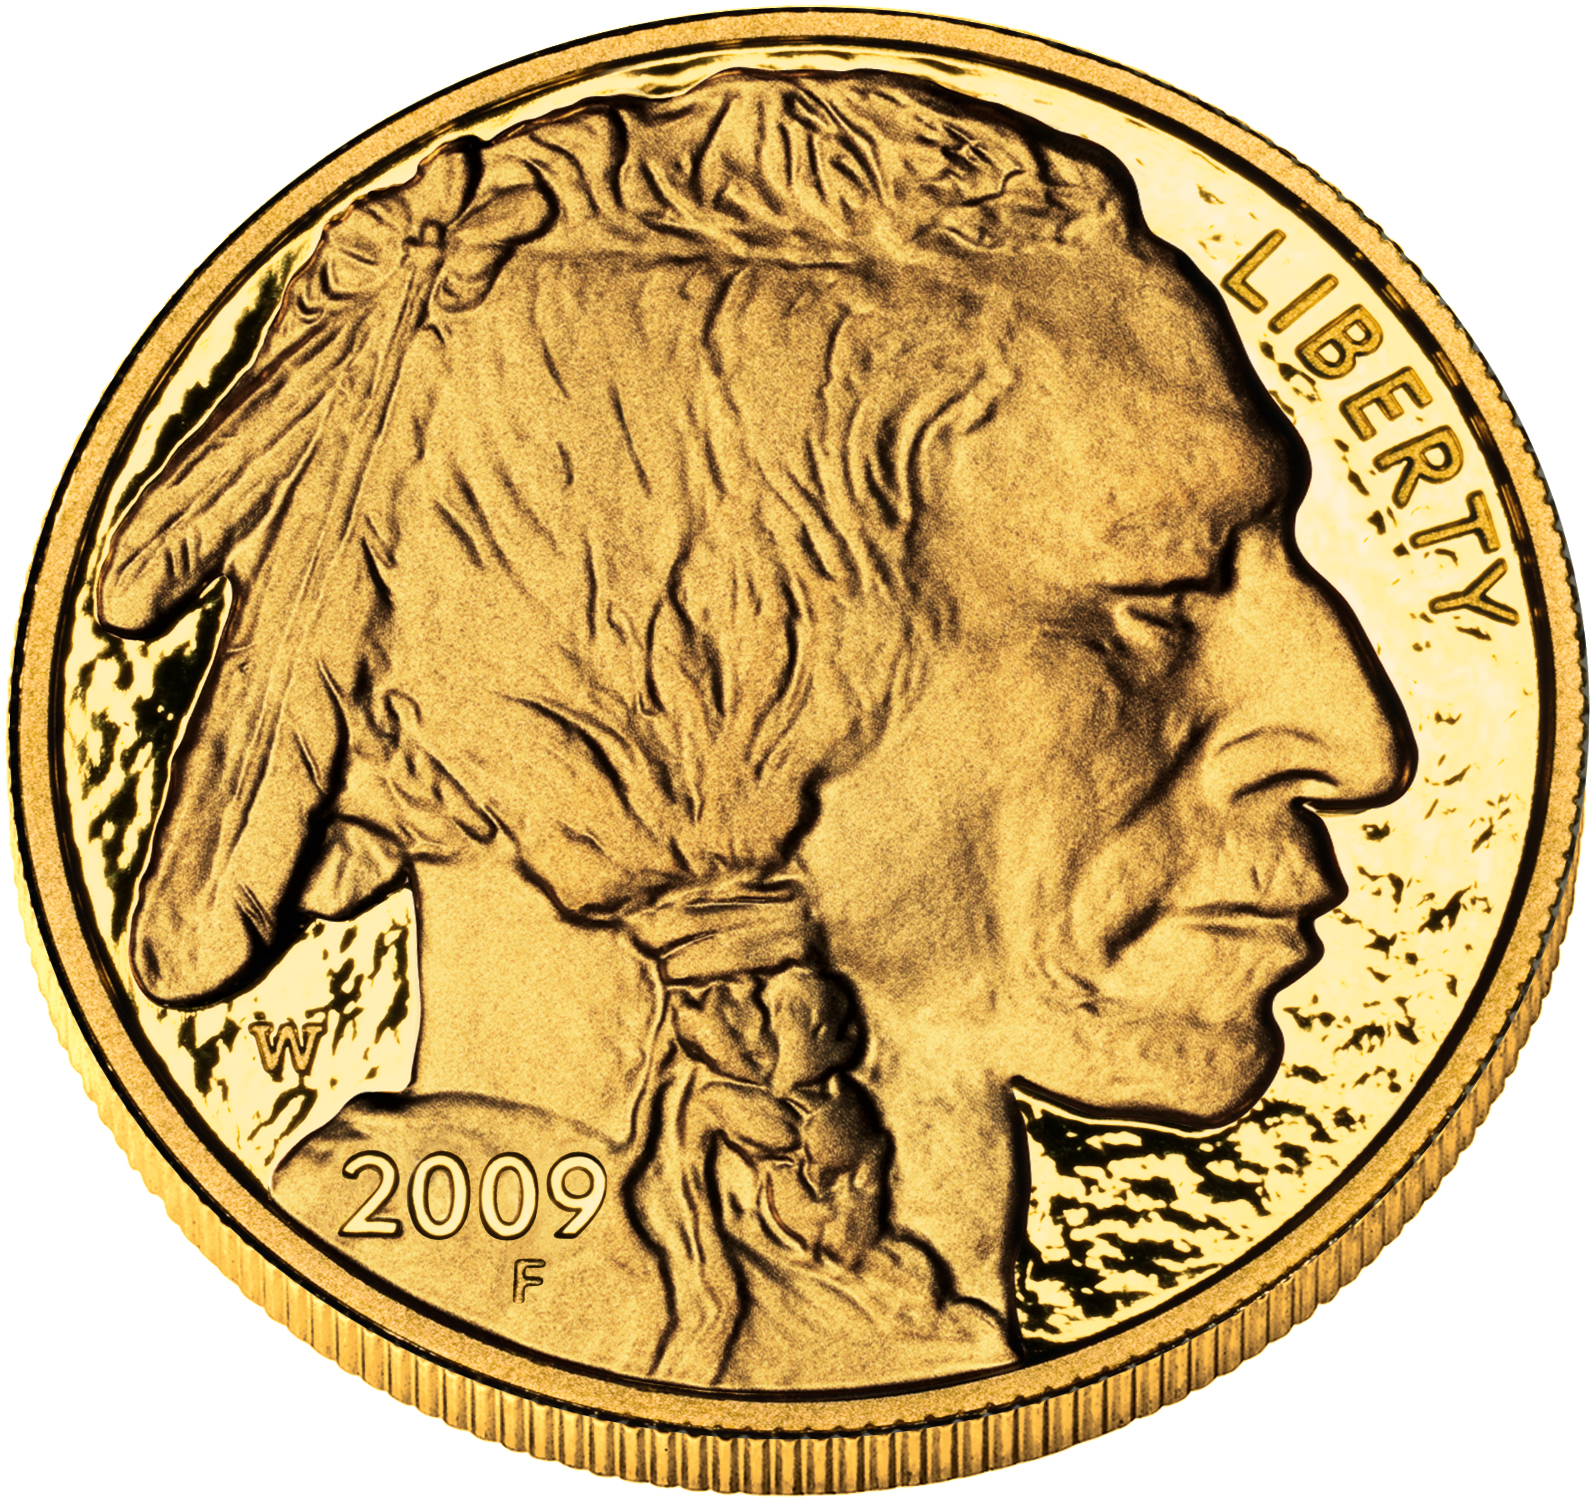 2010 American Buffalo Gold Proof Coin, Obverse (2009 version shown) - Click to Enlarge